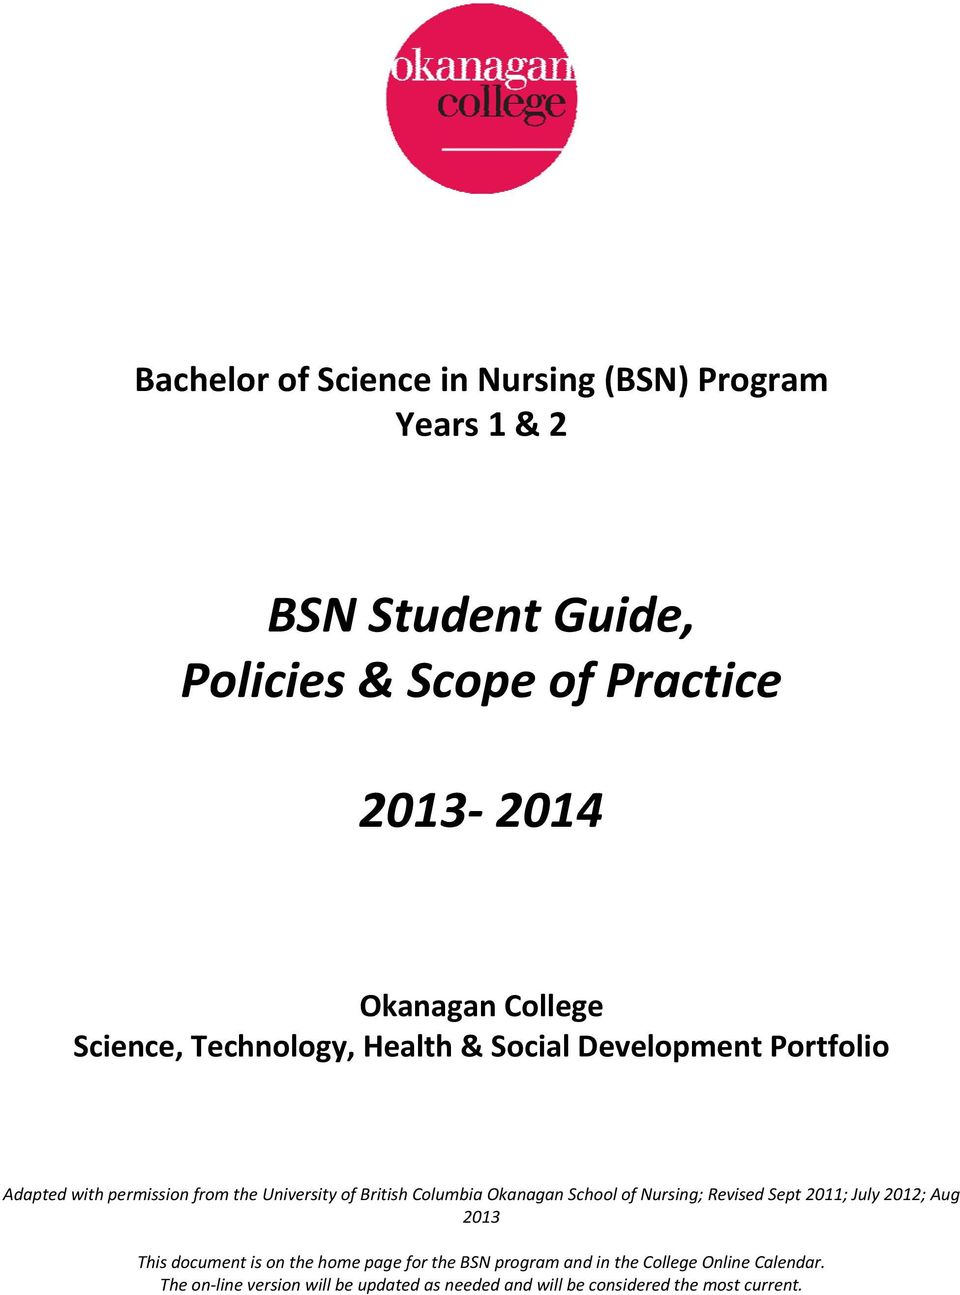 Columbia Okanagan School of Nursing; Revised Sept 2011; July 2012; Aug 2013 This document is on the home page for the BSN